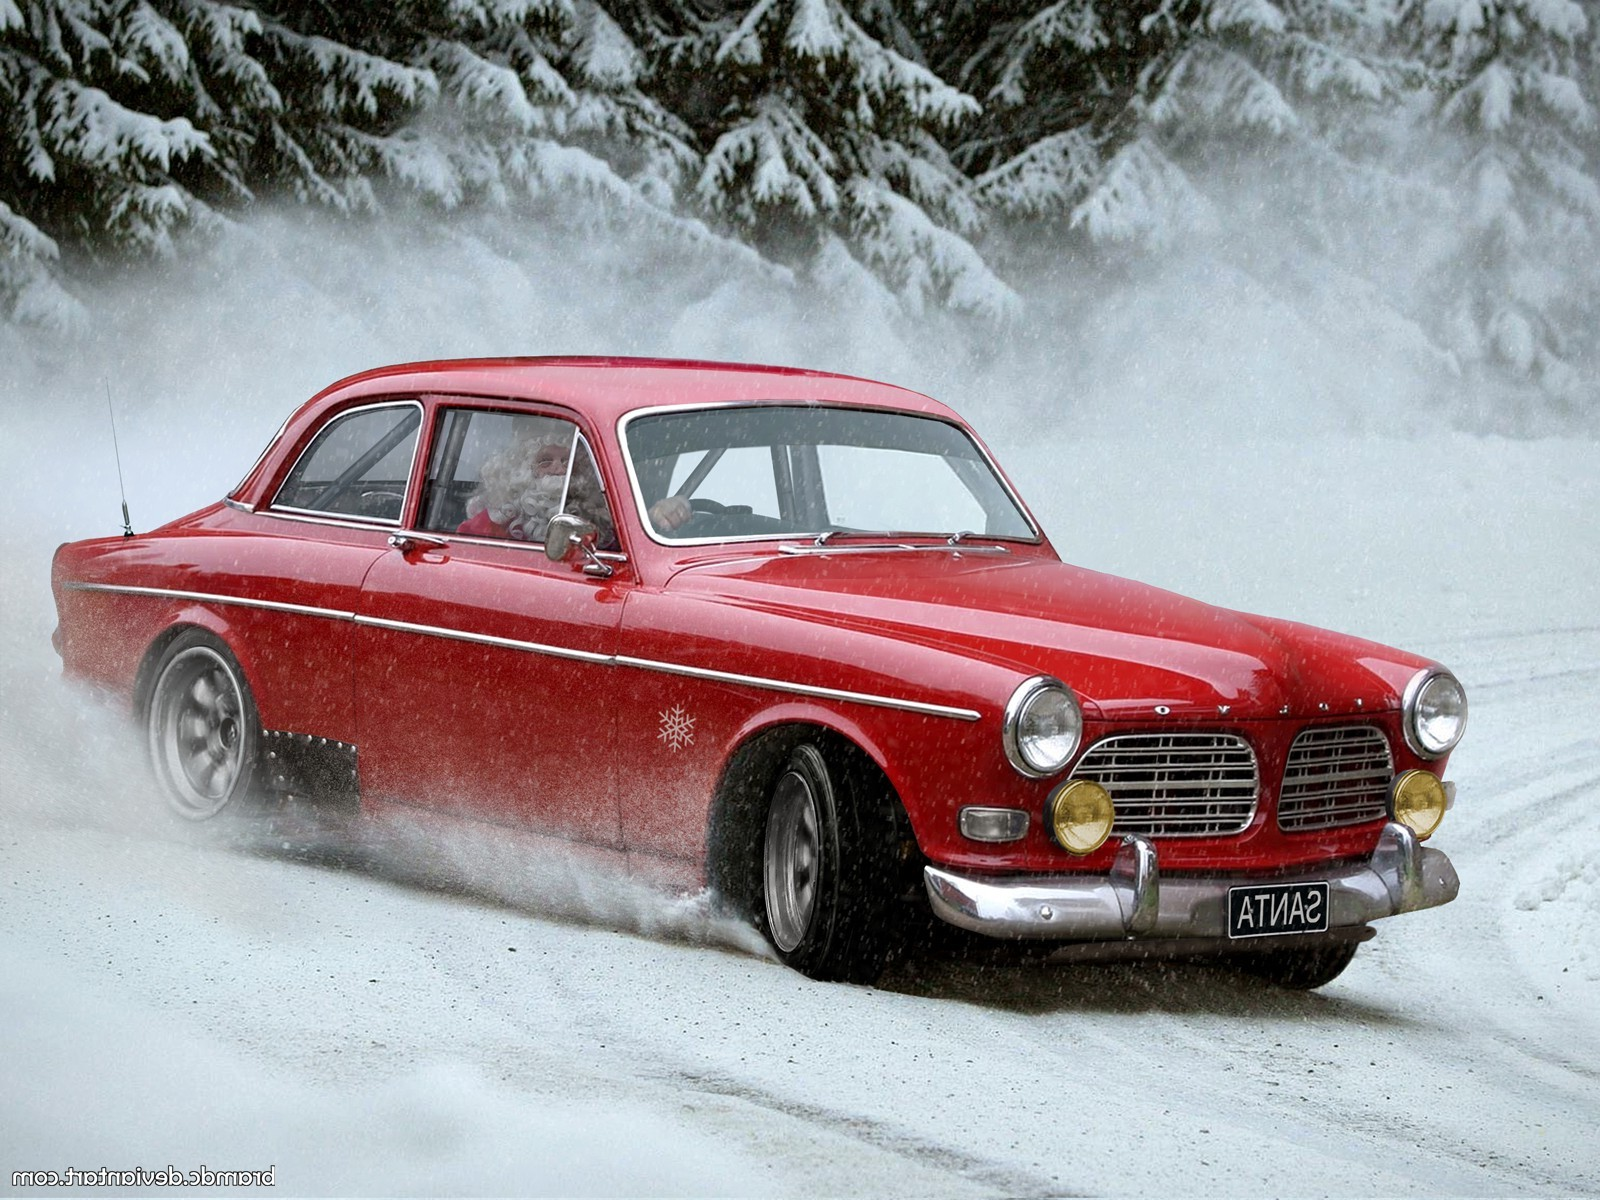 Rally Car Wallpaper Snow Snow Santa Santa Claus Drift Car Volvo Humor